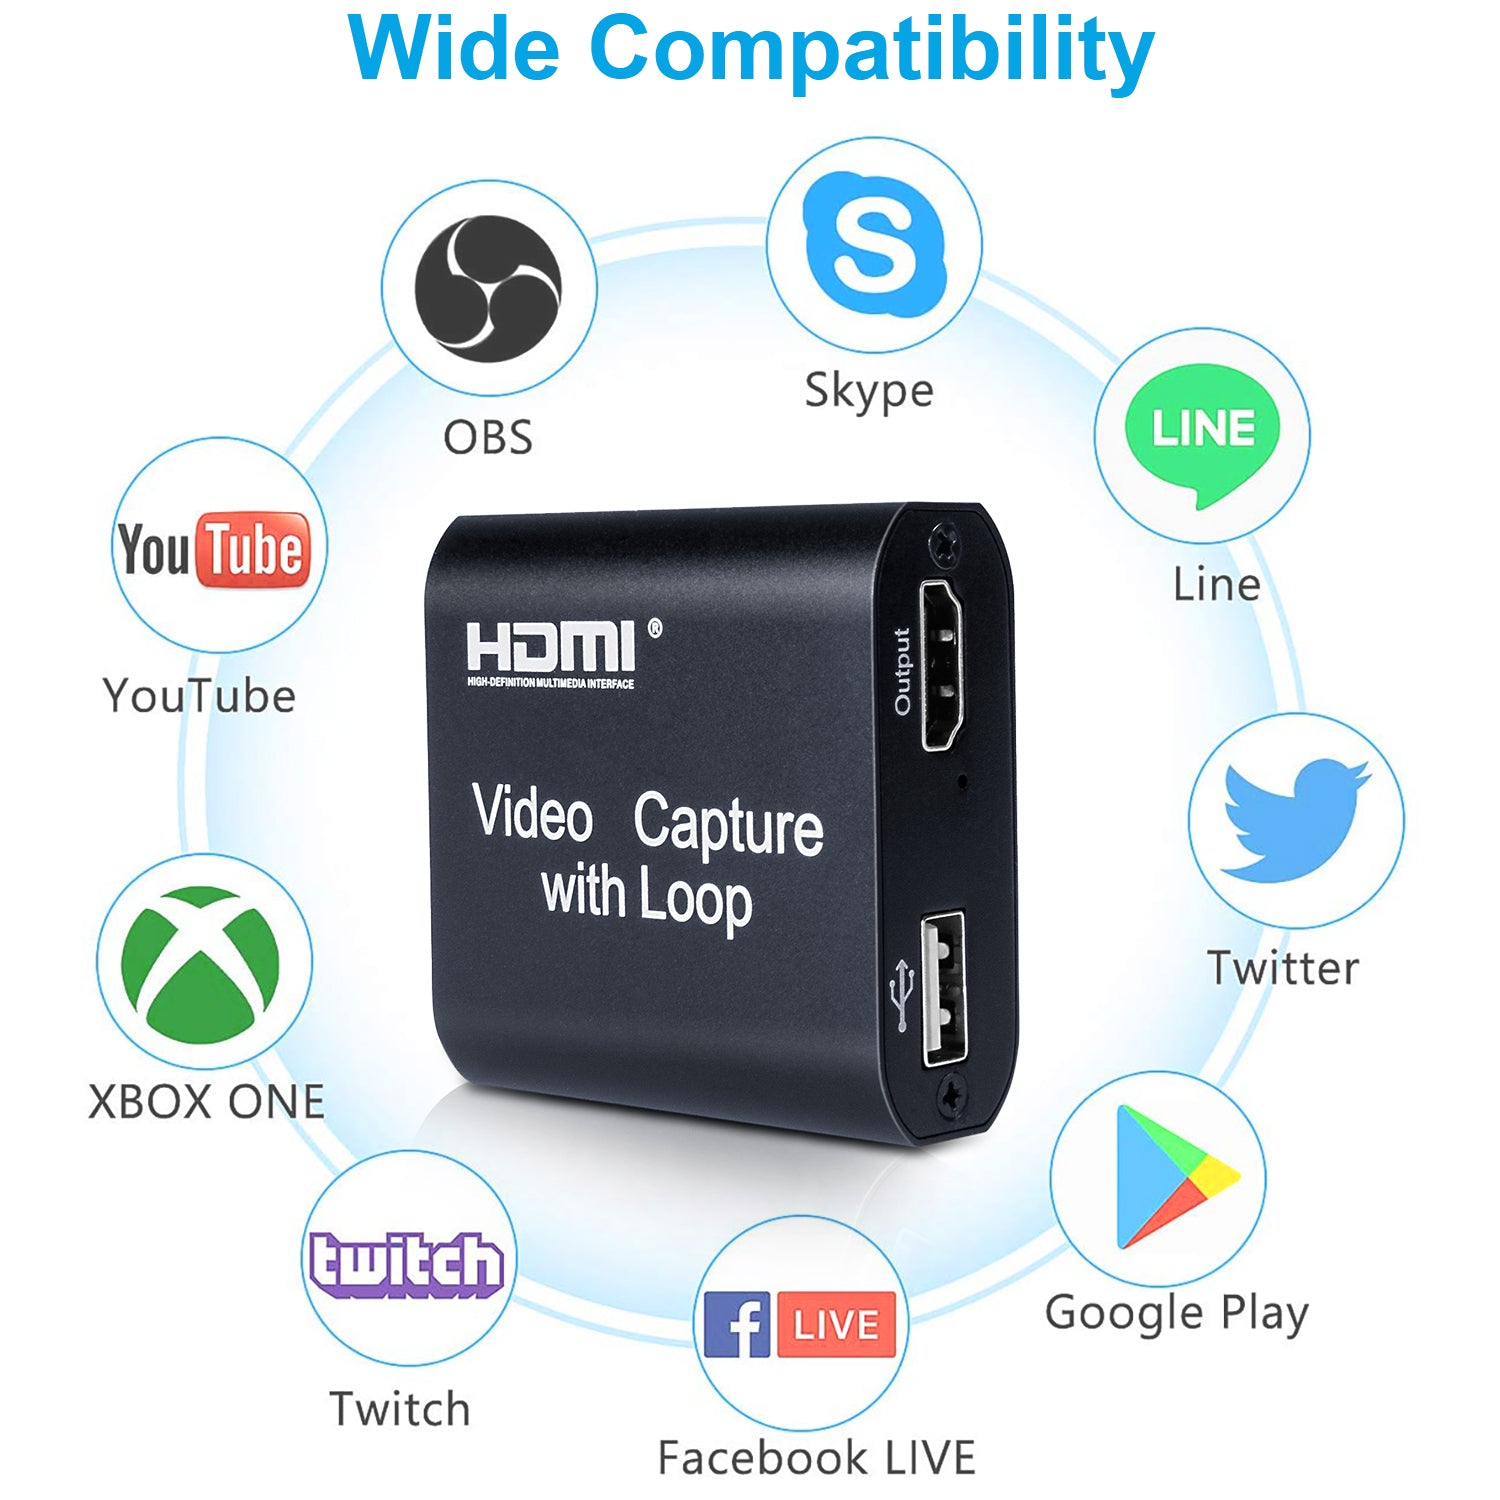 MONODEAL HDMI Video Game Converter with Loop Out, HDMI to USB Capture Device Support Full HD 1080P Video for Gaming, Streaming, Teaching, Video Conference, Live Broadcasting